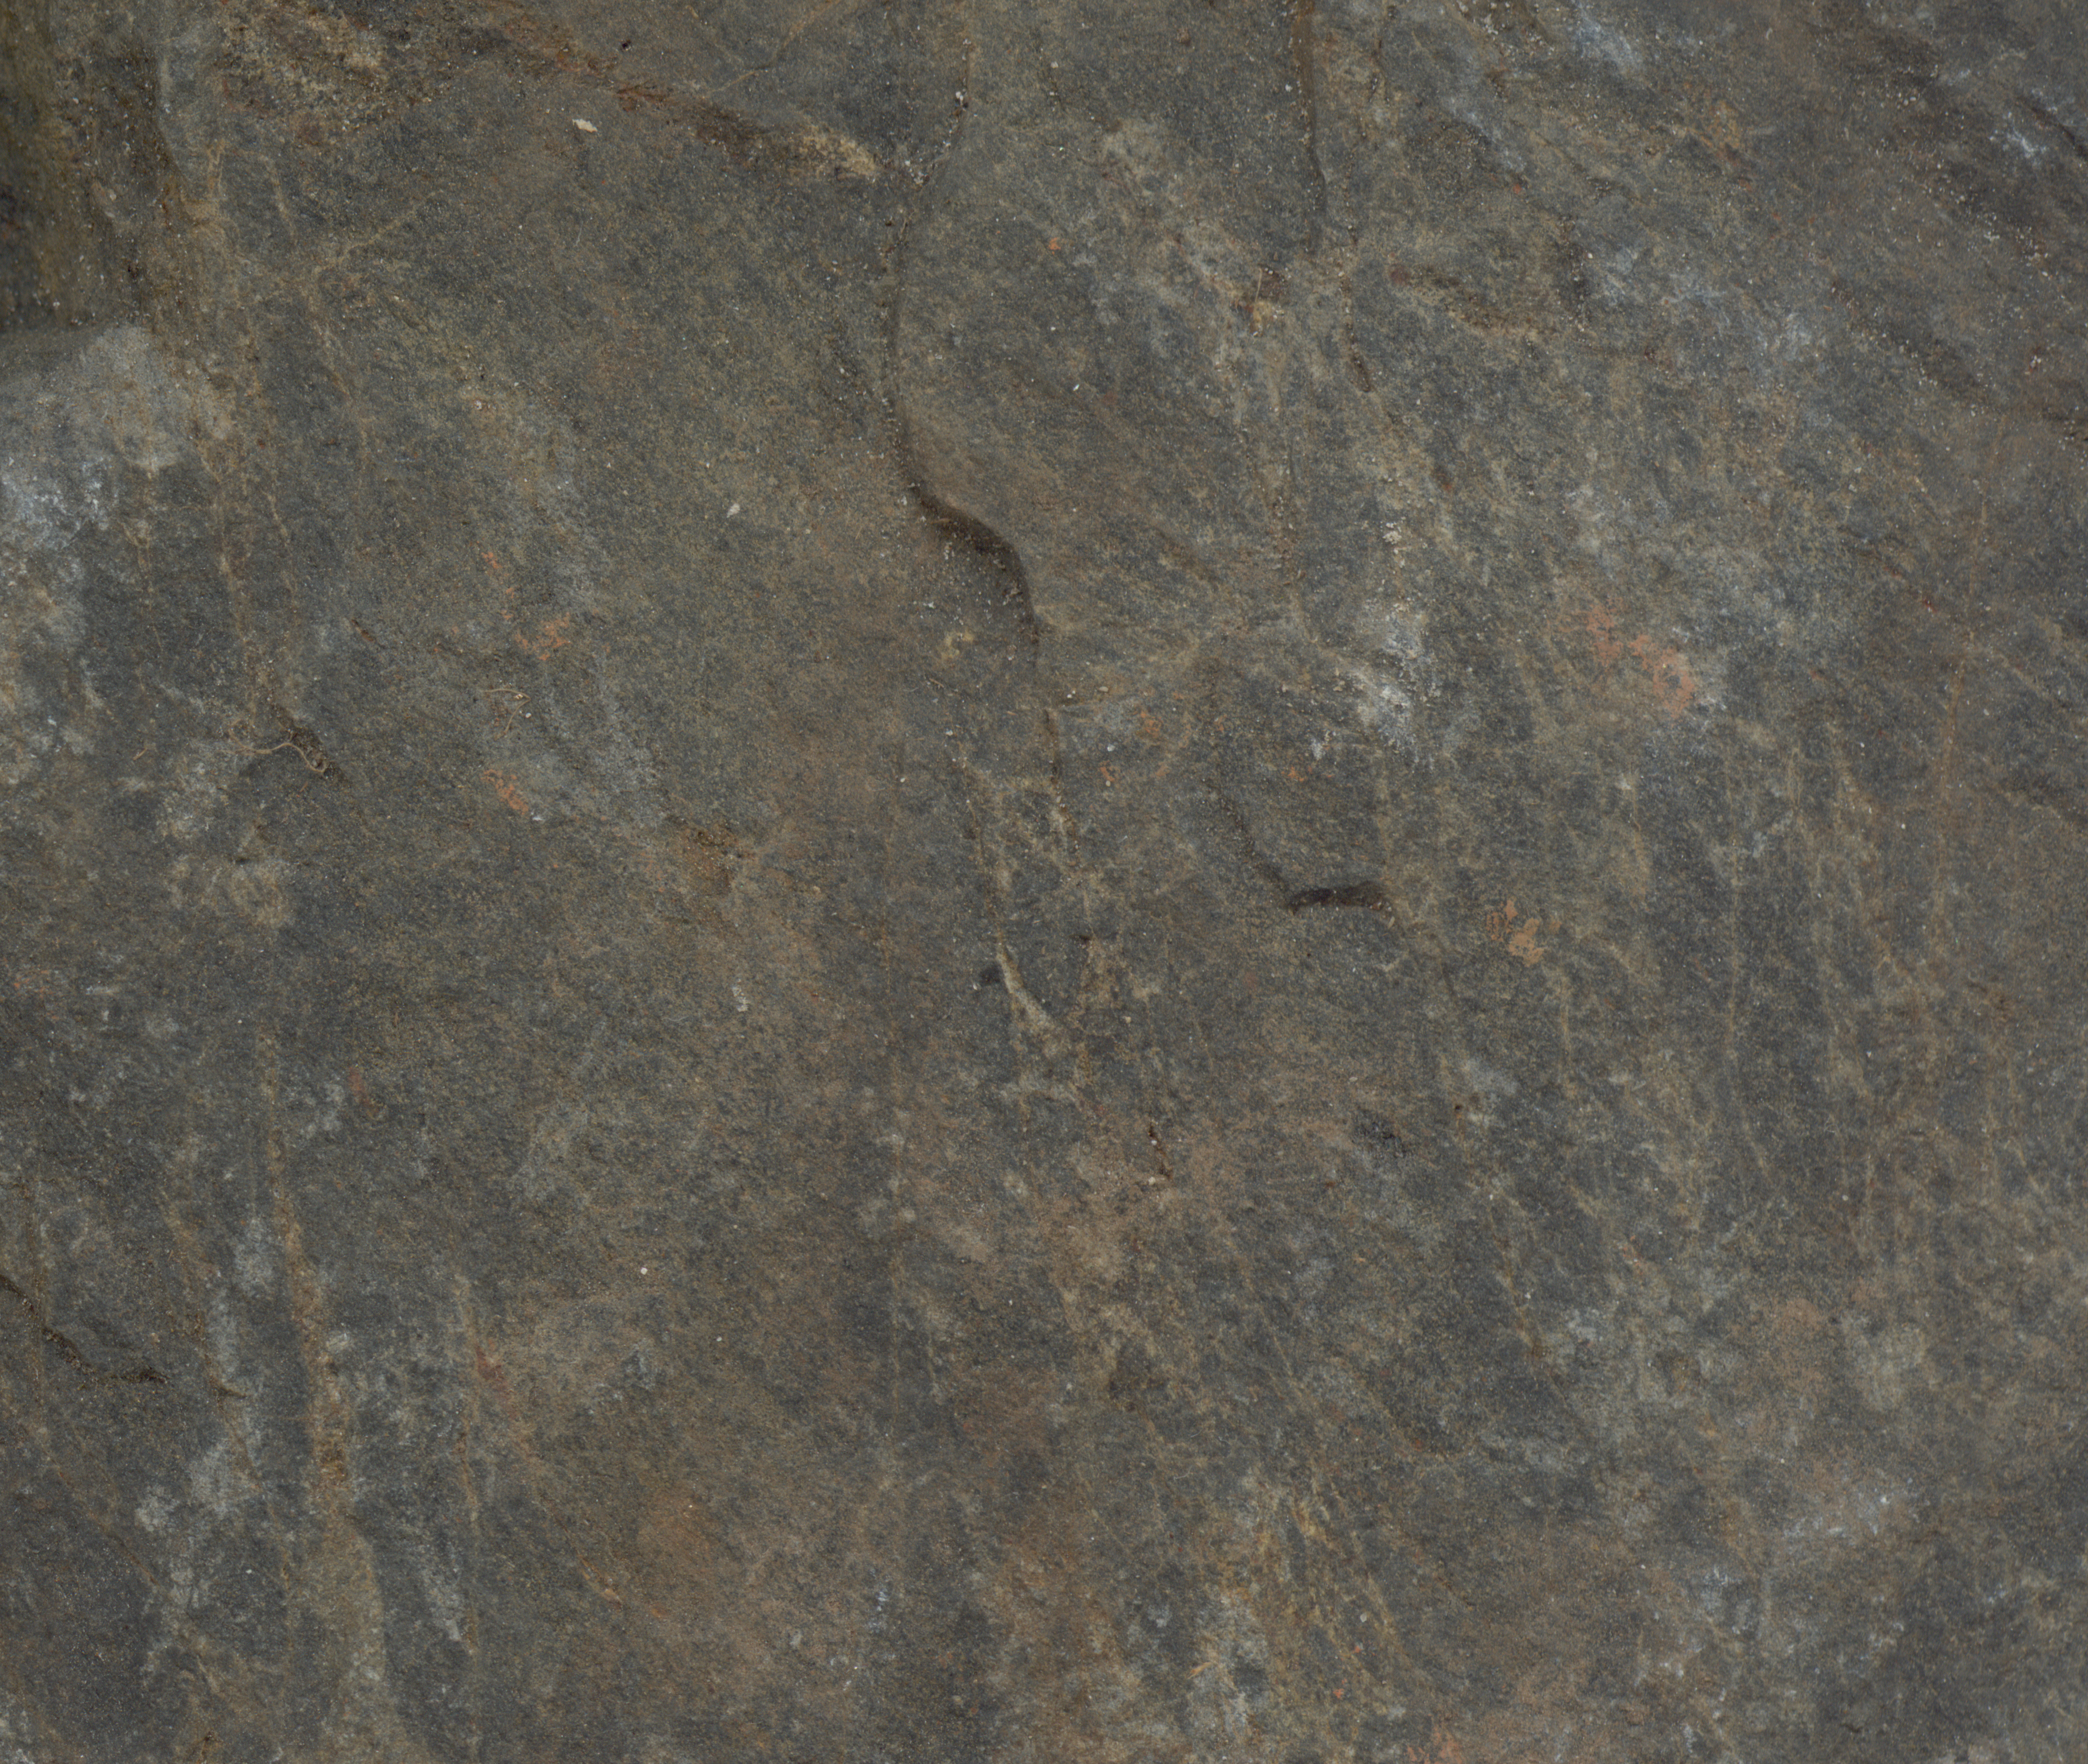 High Res Stone : Image after photos kinkyfriend ultra high resolution